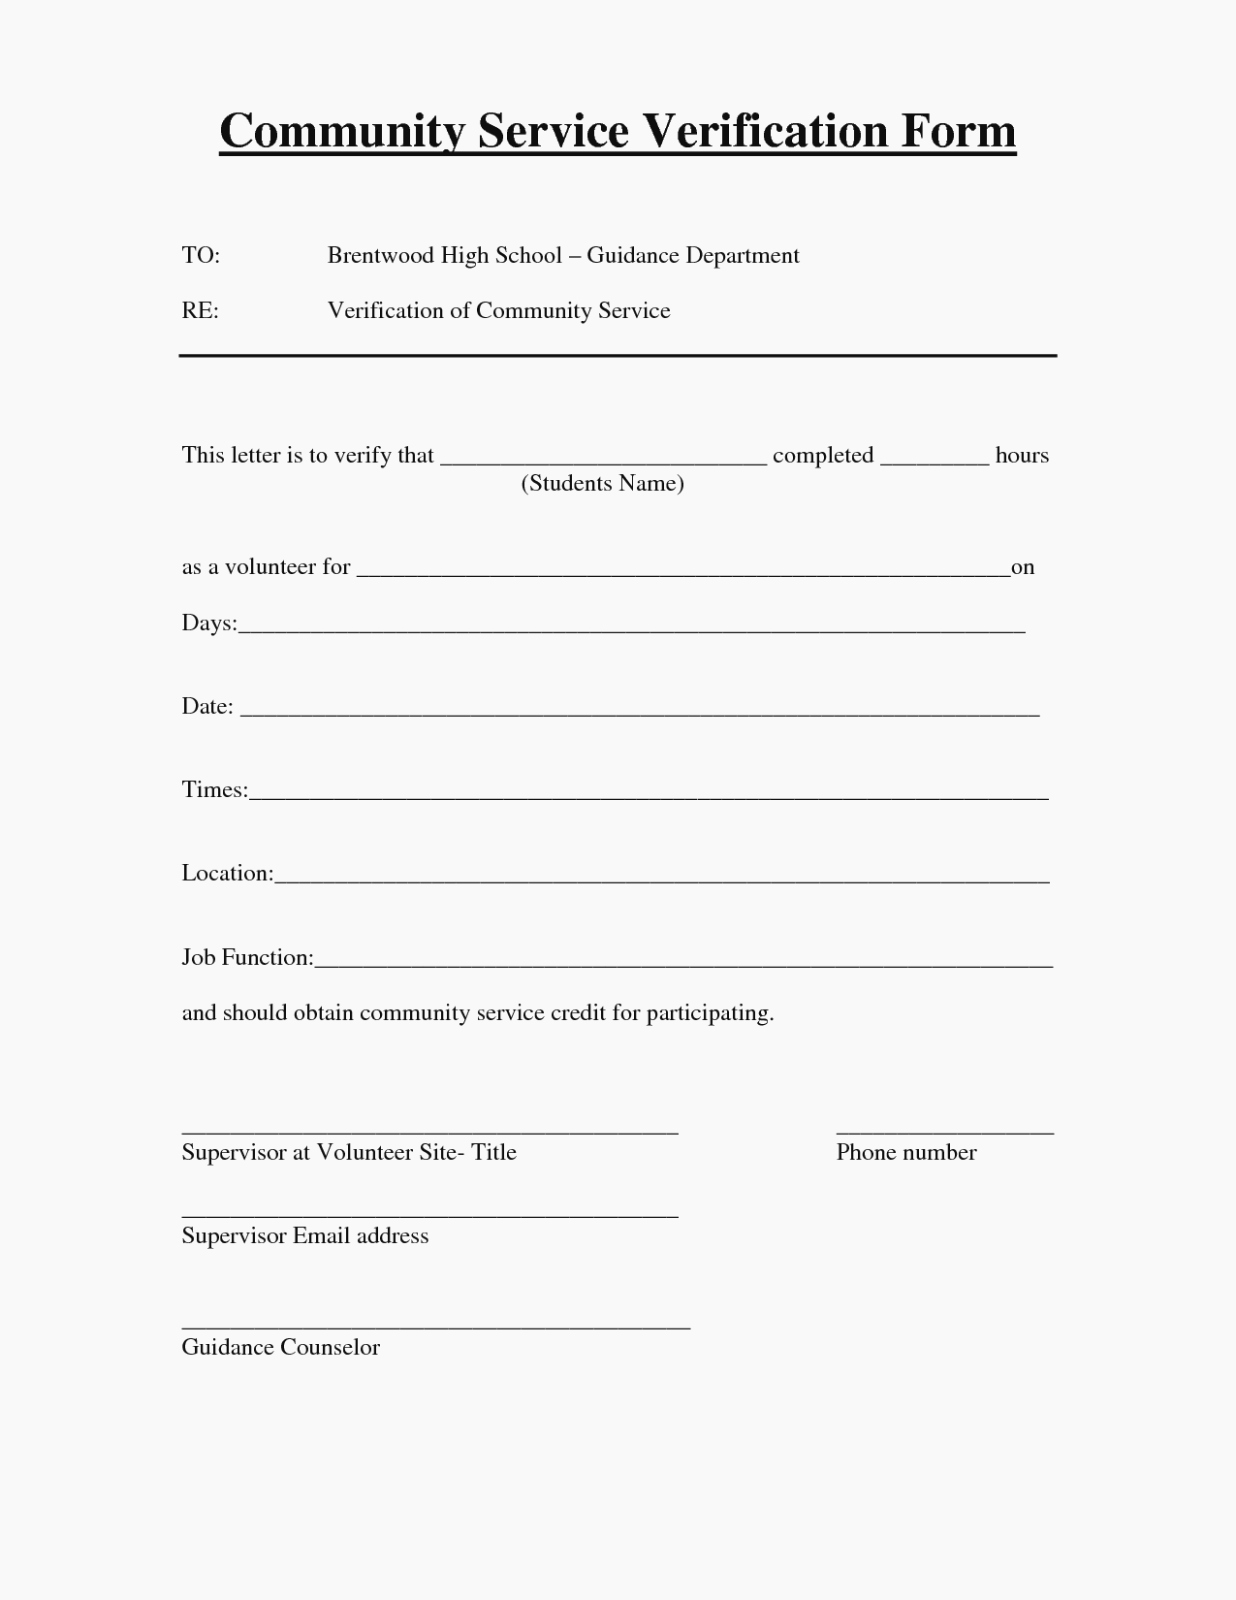 Community Service Hours form Template Best Of Munity Service